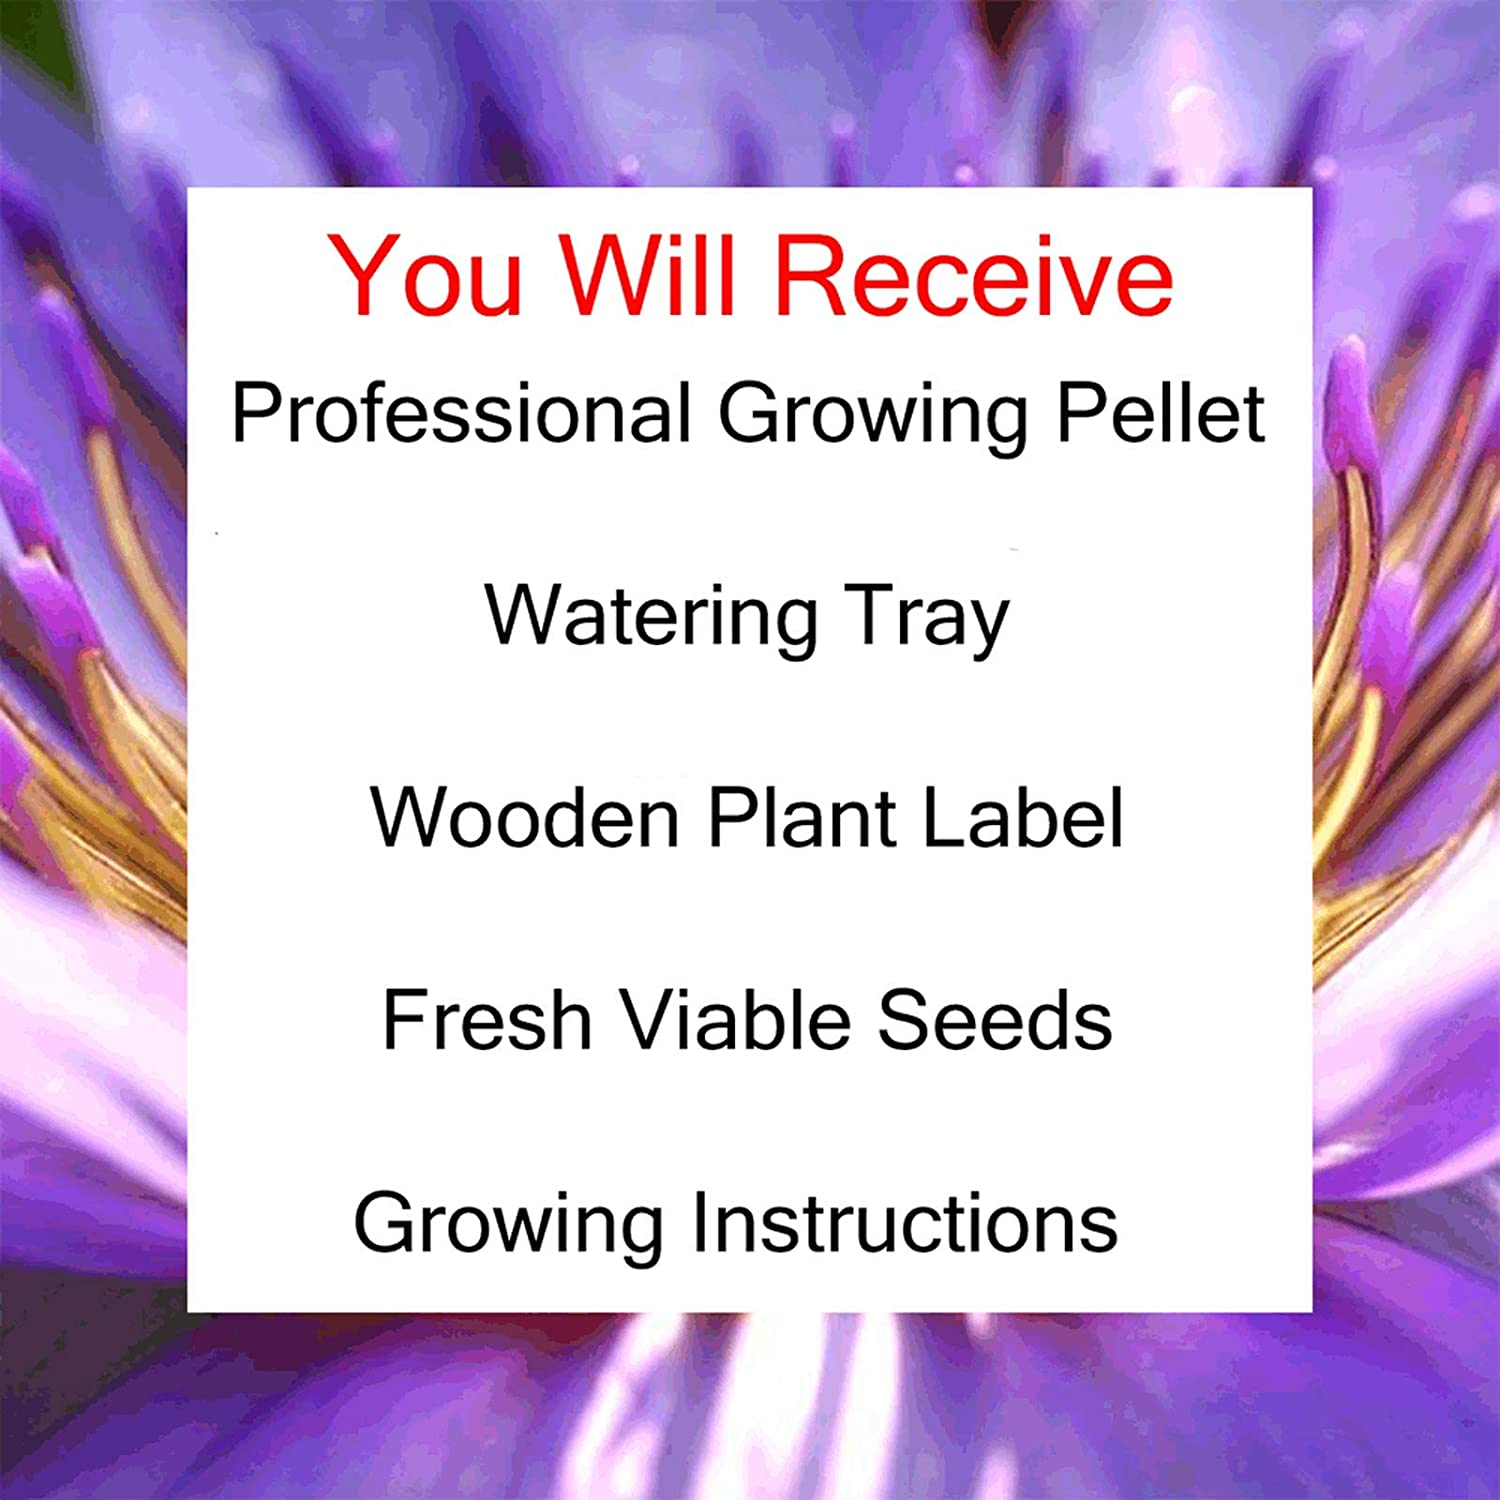 Unusual Women or Children Unique and Quirky Complete Beginner Friendly Indoor Gardening Gift for Men Grow Your Own Livingstone Daisy Plant Kit